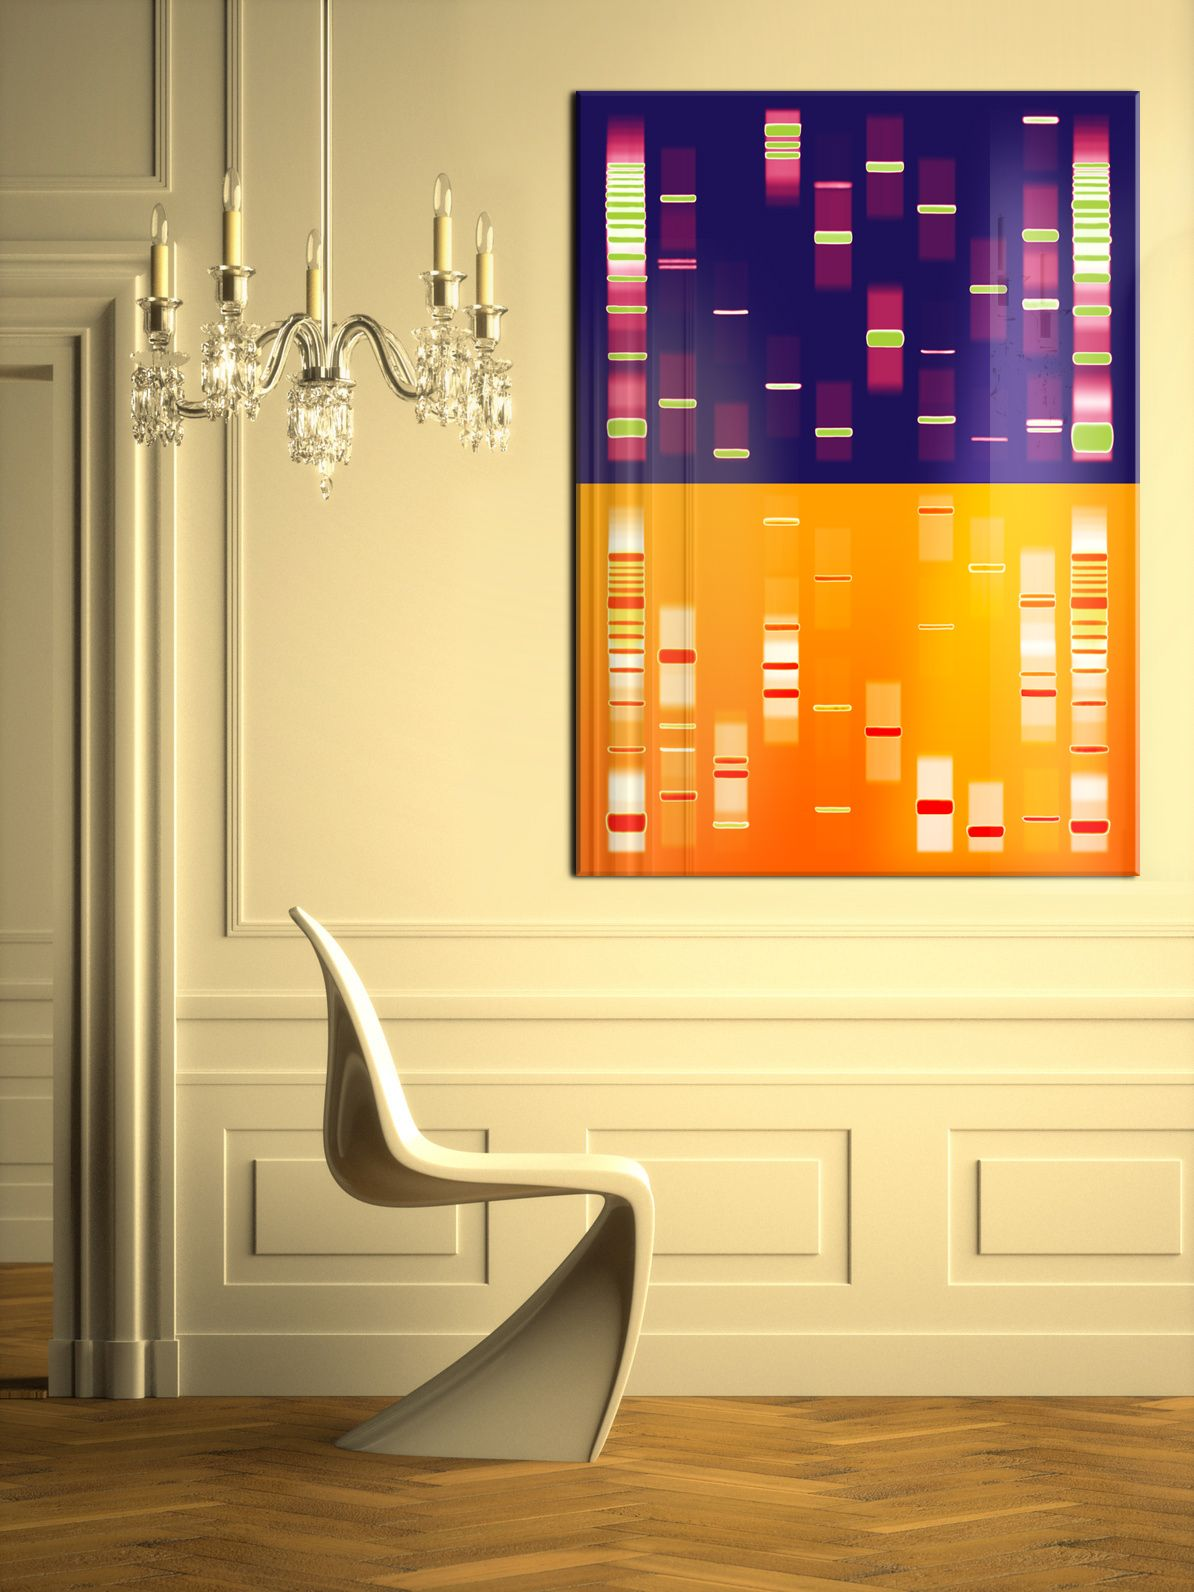 dna art | embrace your inner science geek! | Pinterest | Biology art ...